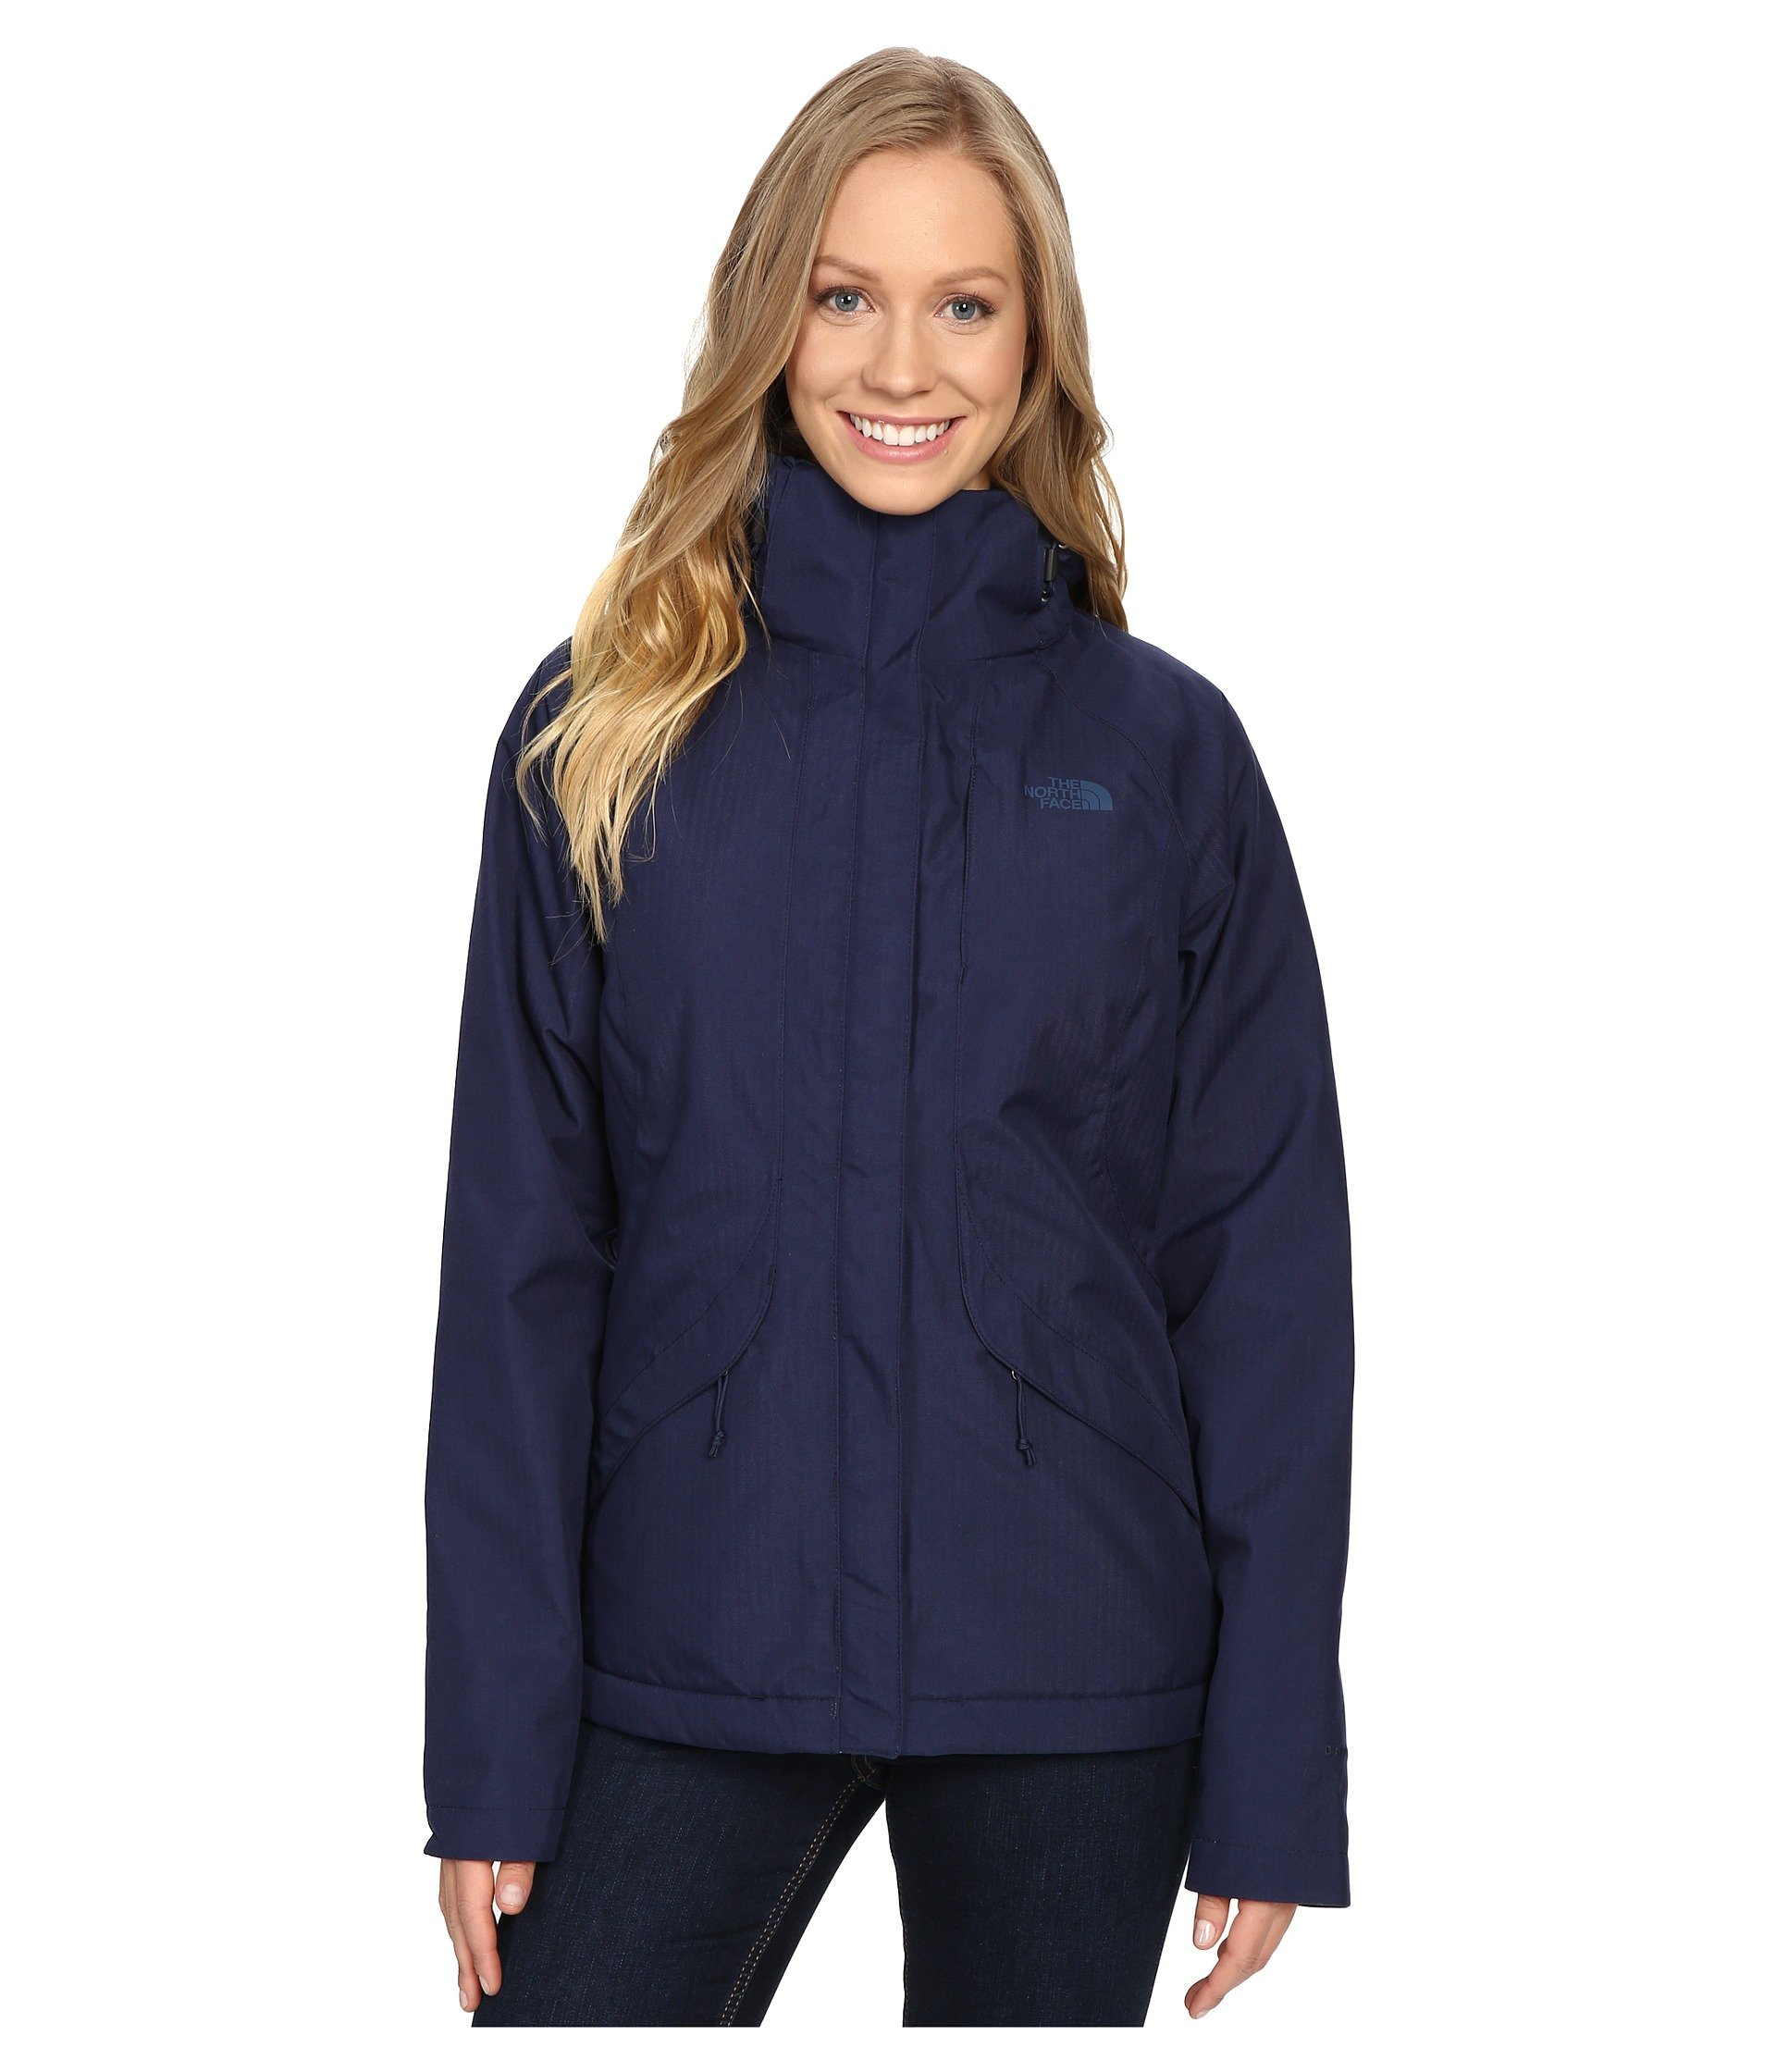 db96876fb602 Galleon - The North Face Women s Inlux Insulated Jacket Cosmic Blue (Prior  Season) X-Small